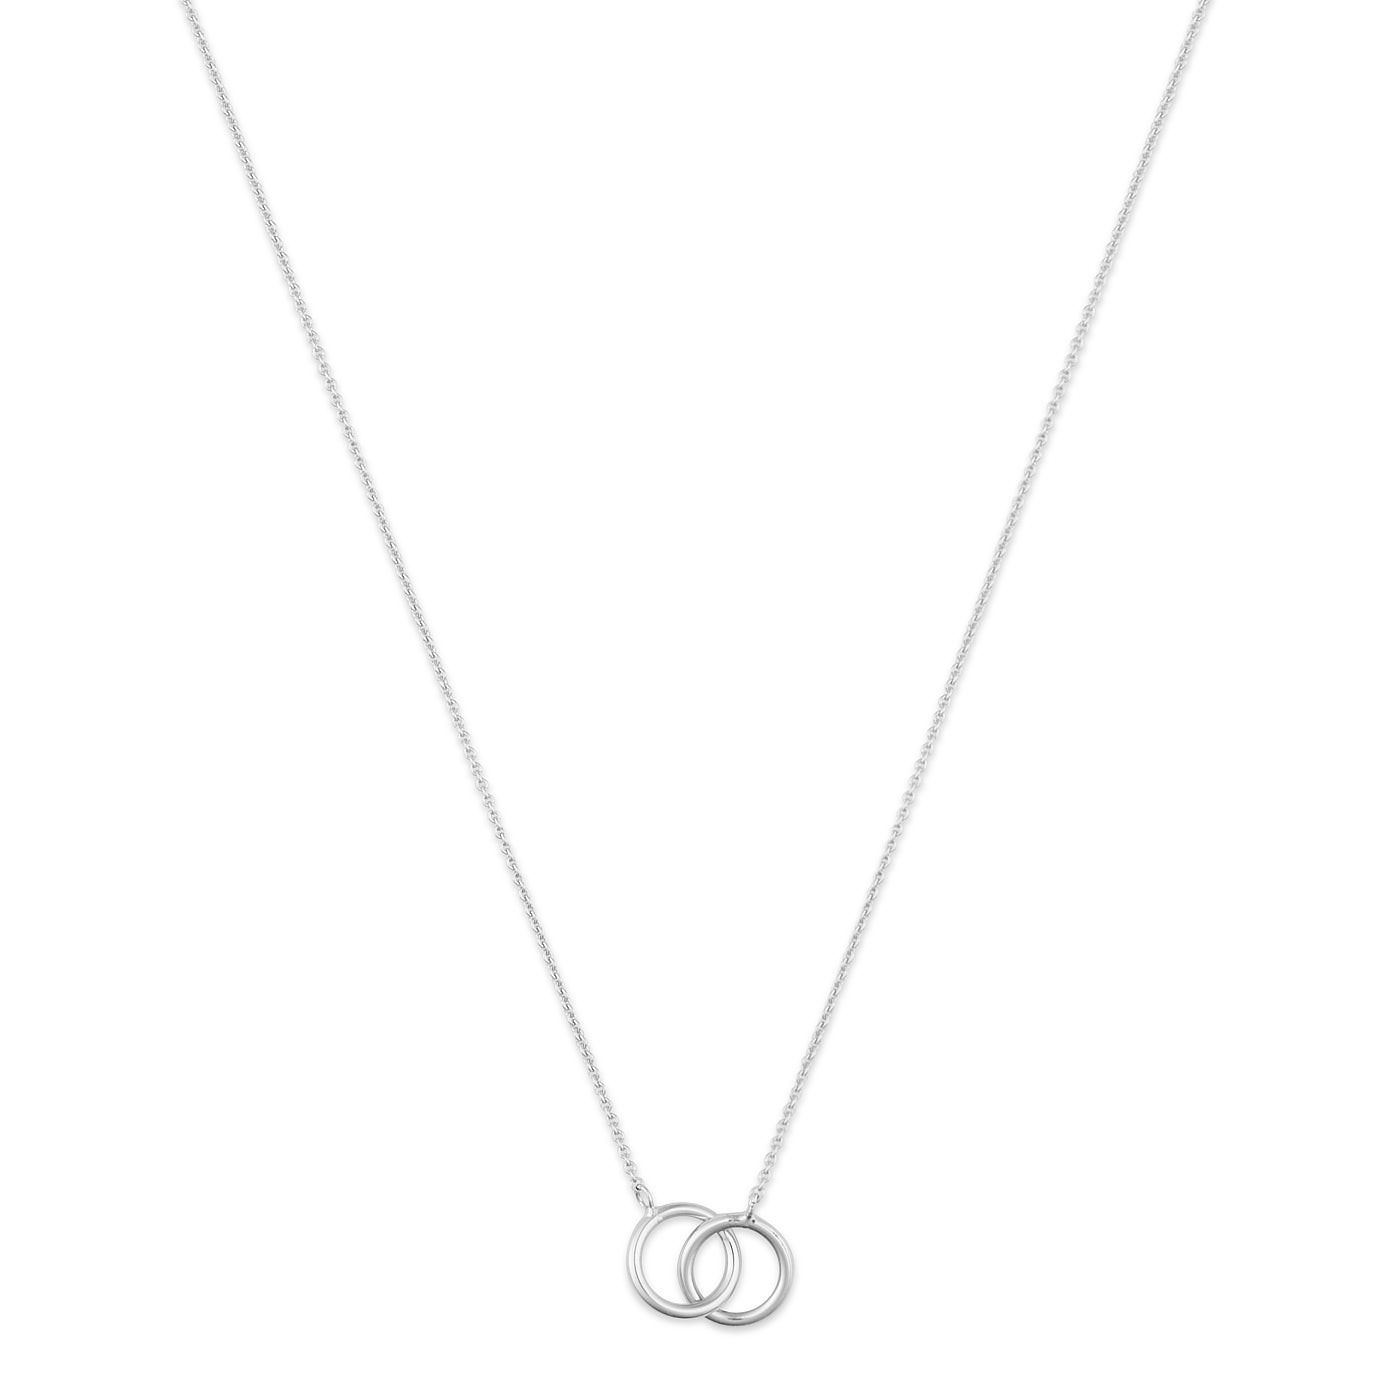 Selected Jewels Mila Pip 925 sterling silver necklace